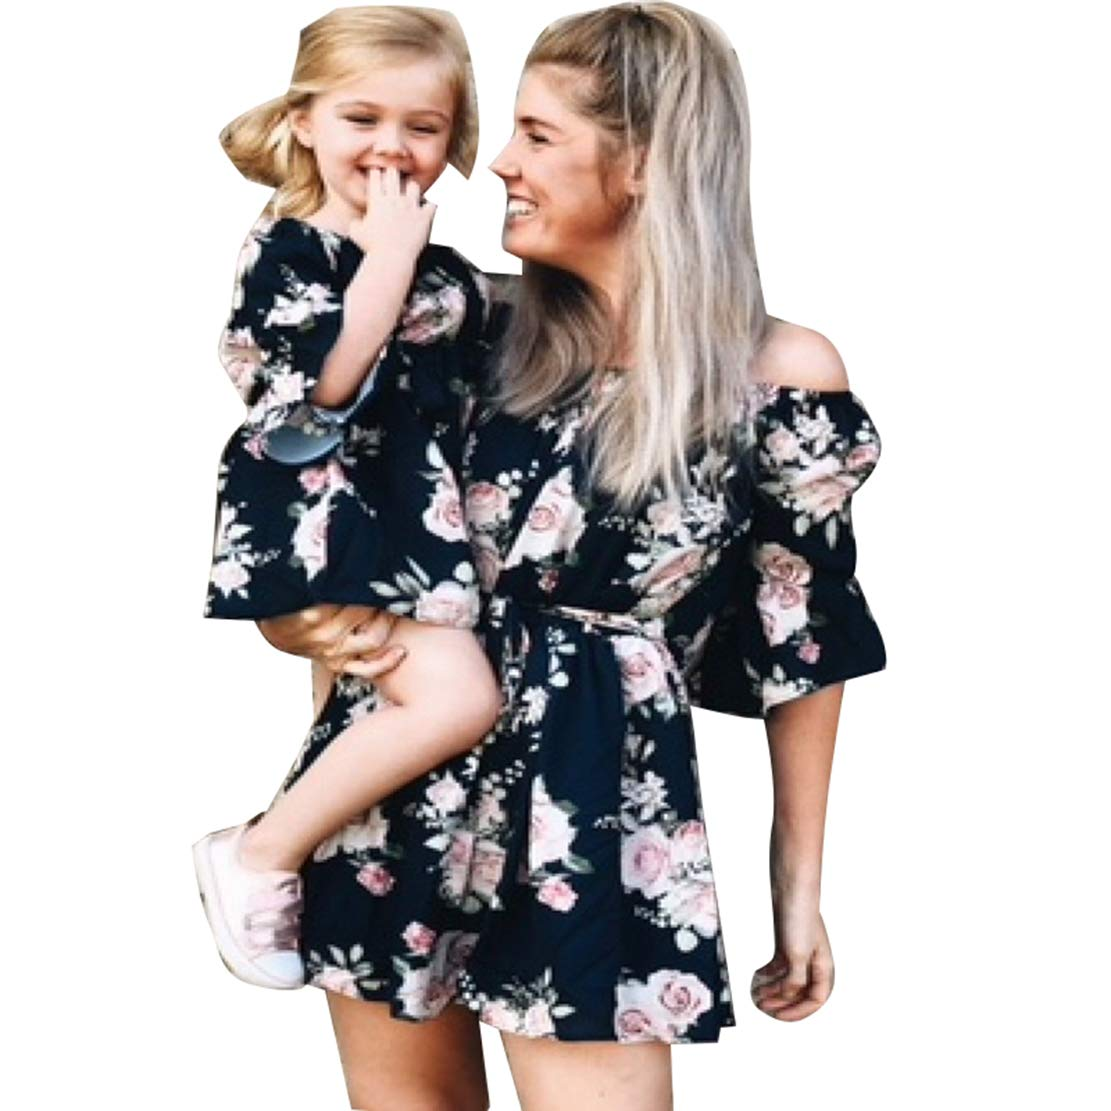 Family Matching Flower Print Off Shoulder Dress Mommy and Me High Waist 3/4 Sleeve Short Dress with Belt (Black, Daughter/3-4Years)